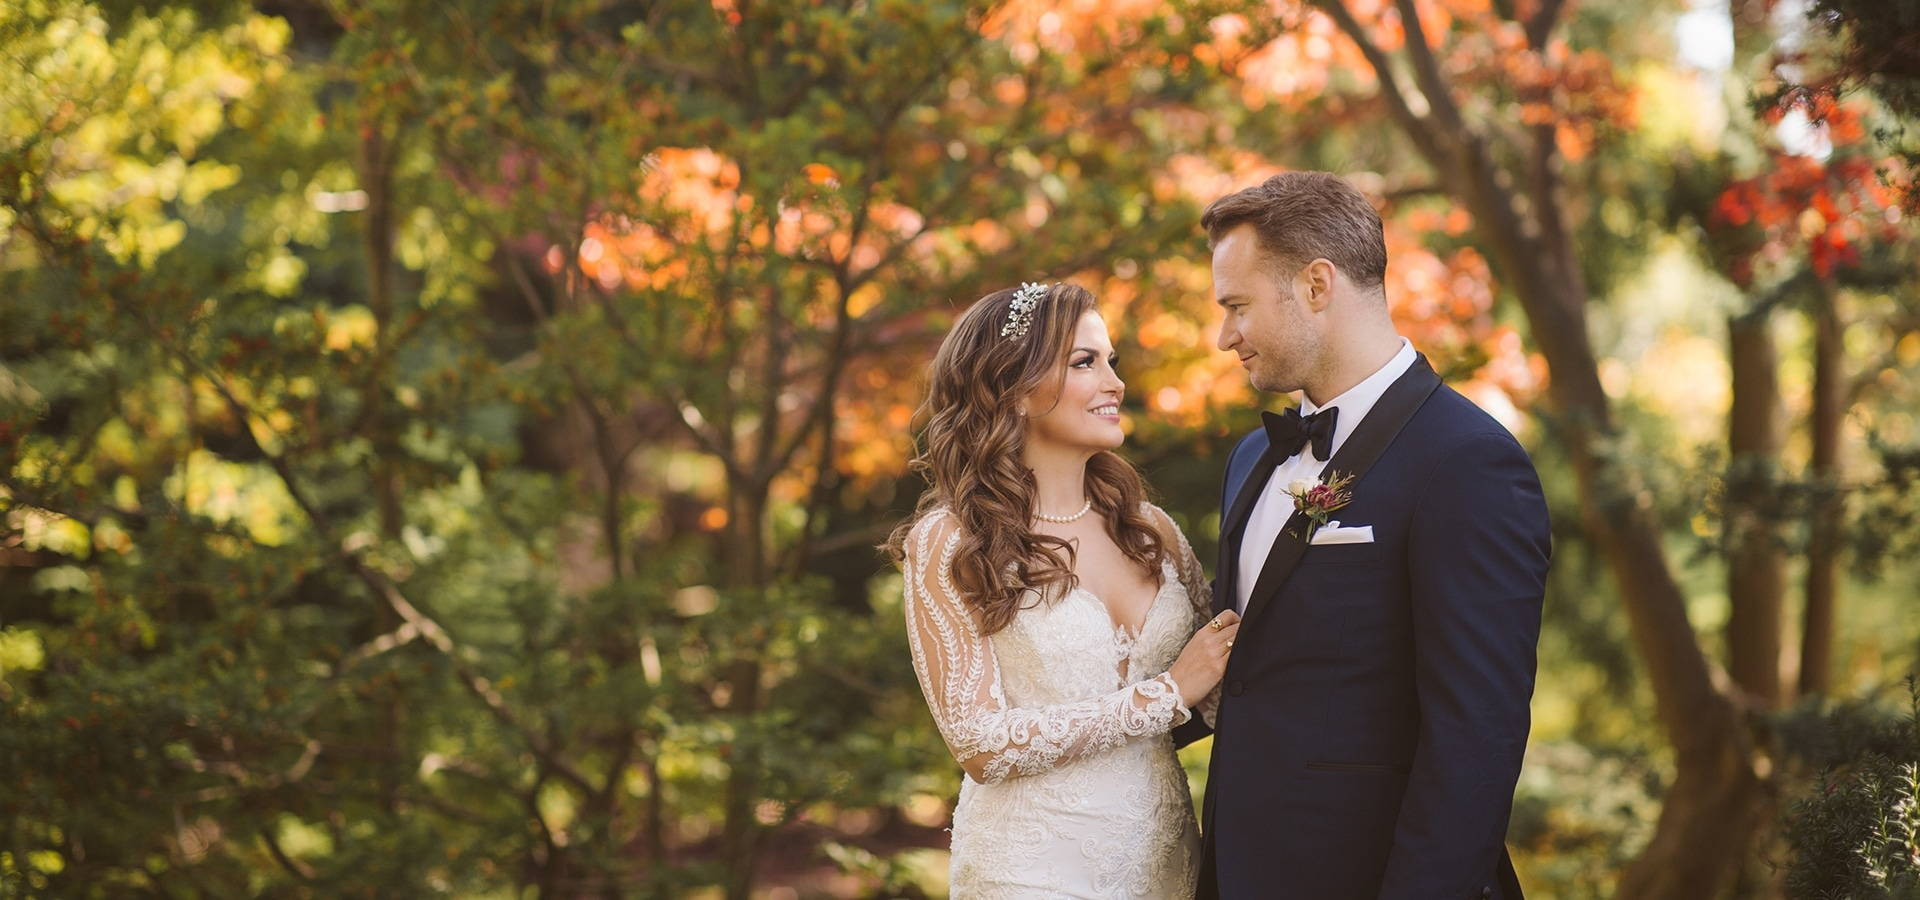 Hero image for Shannon and Tyler's Gorgeously Glam Wedding at Graydon Hall Manor